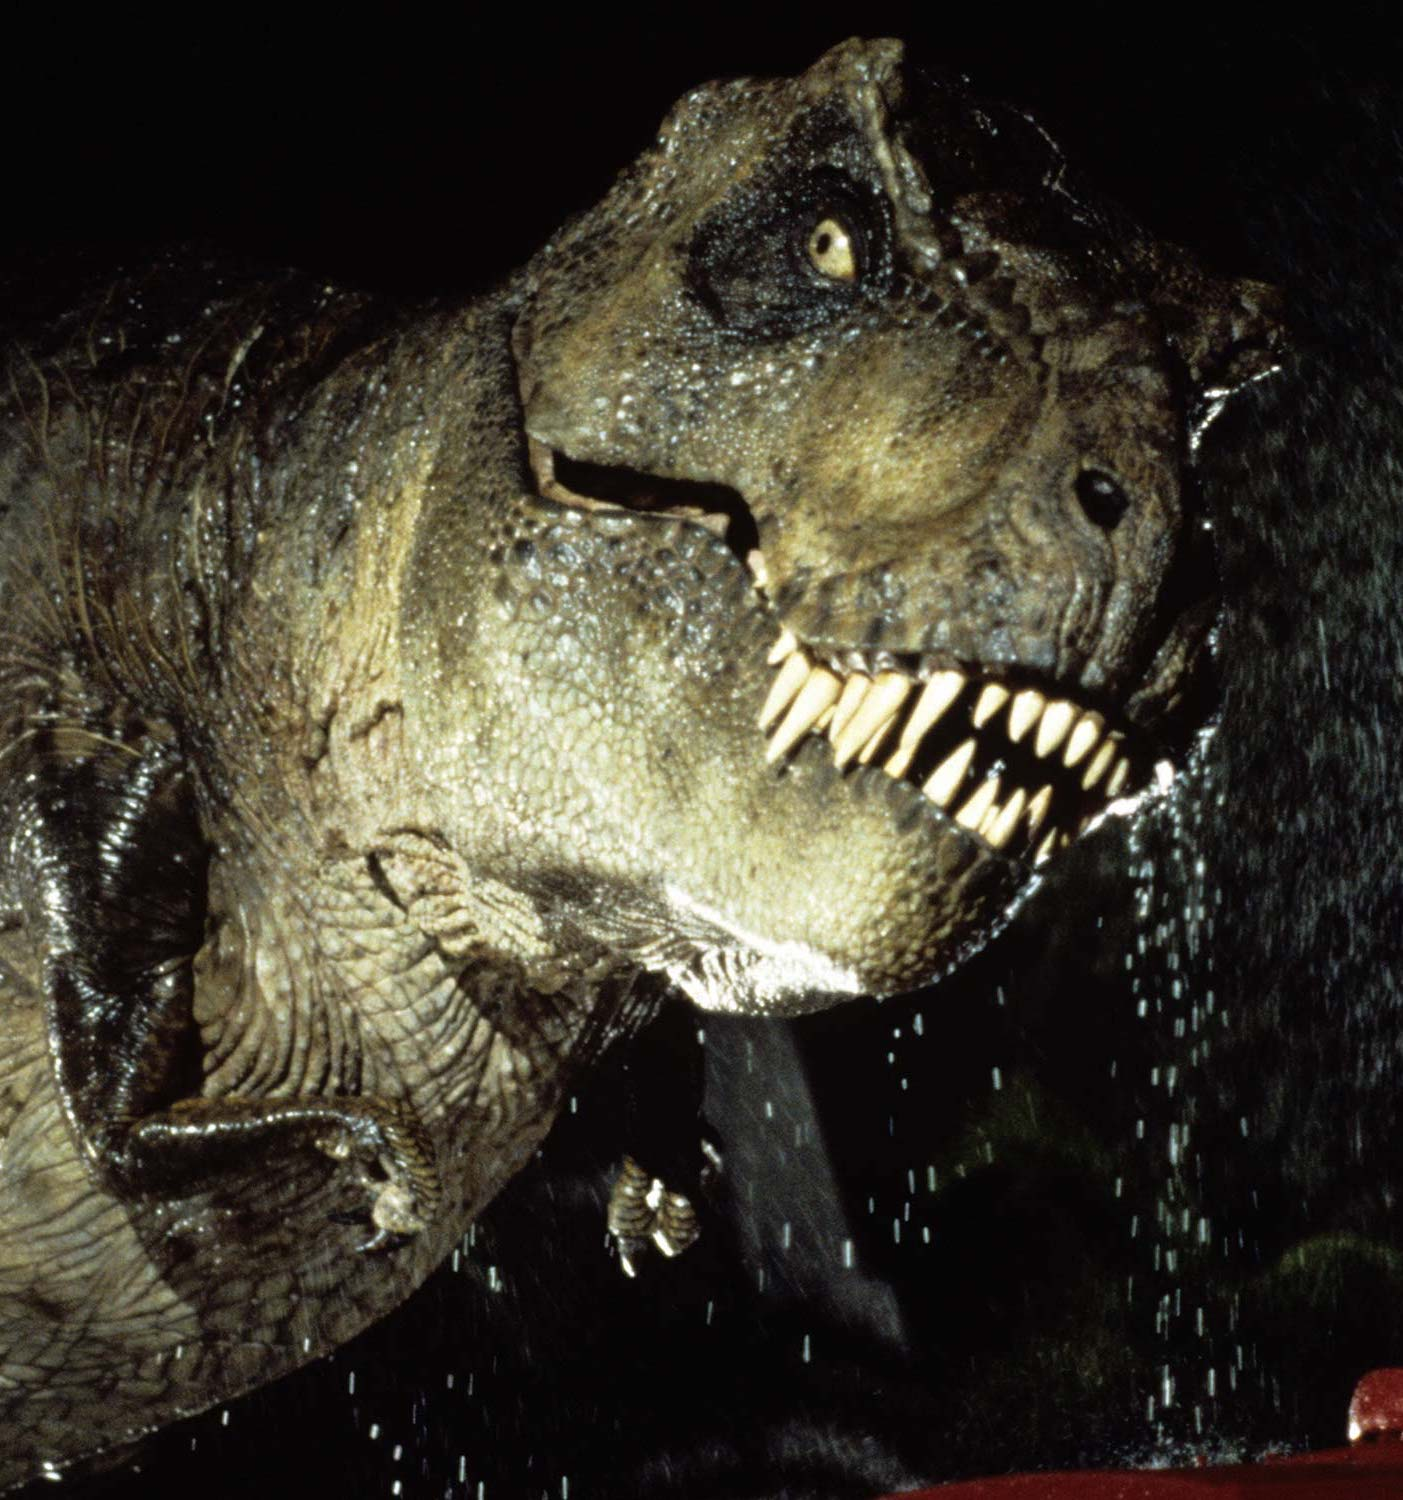 010 jurassic park 1993 6 20 Classic Movie Effects That Will Blow Your Mind